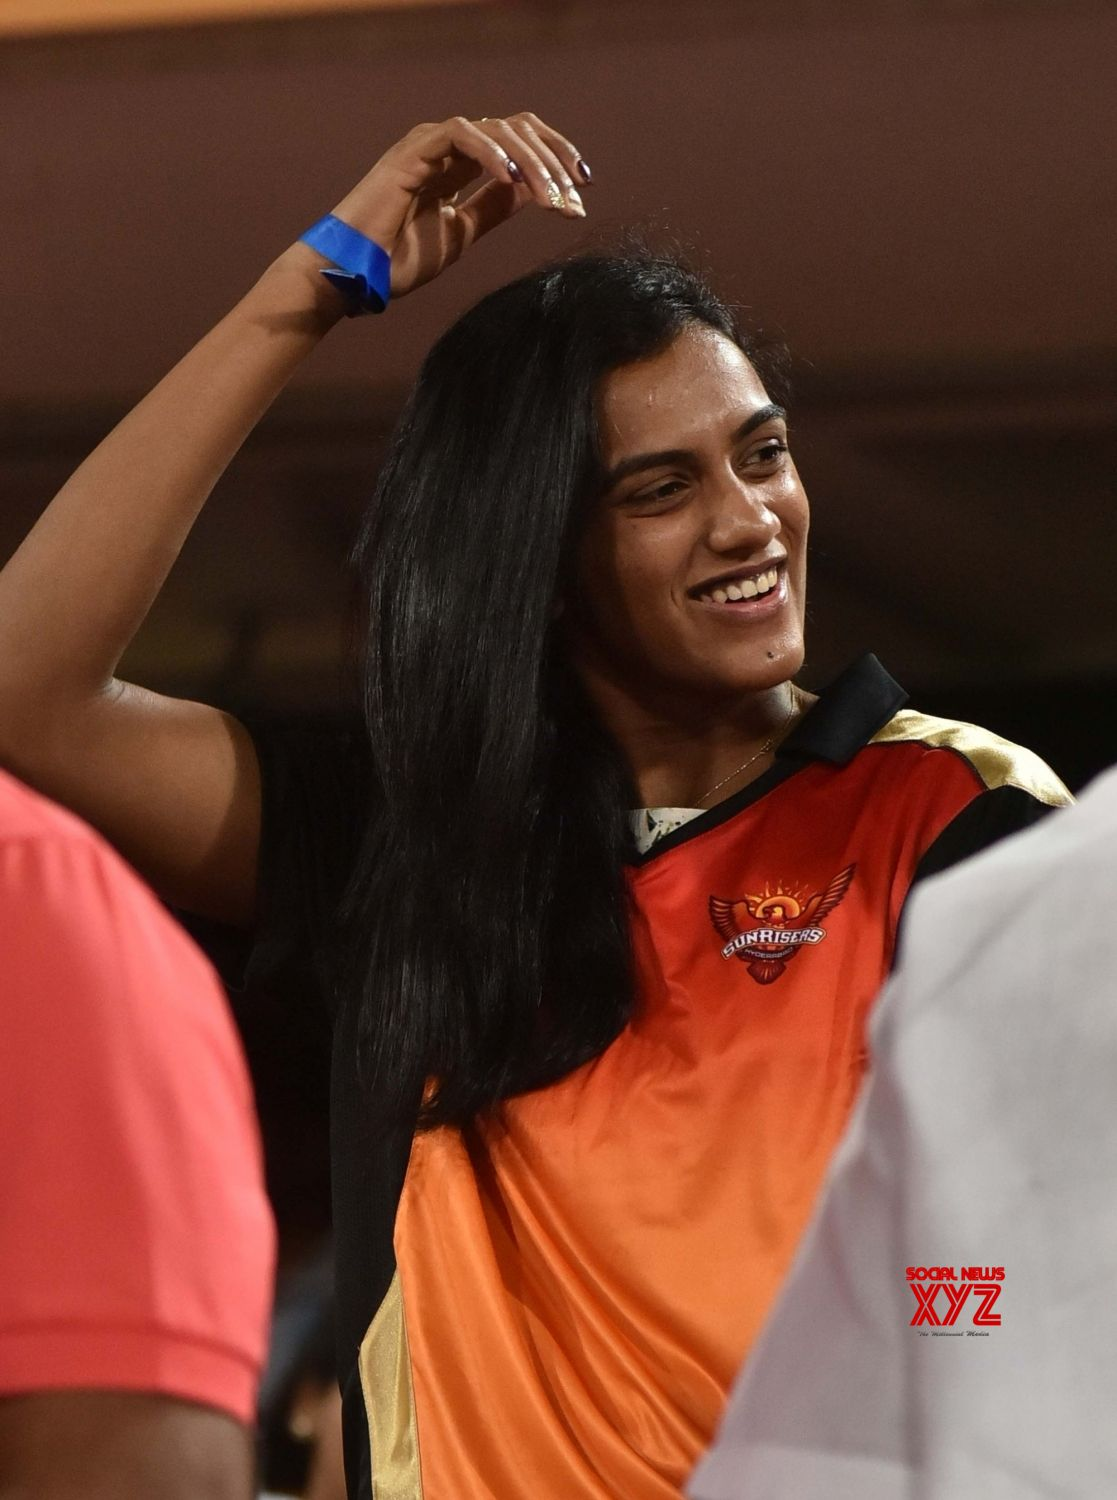 good performance will automatically improve ranking sindhu social